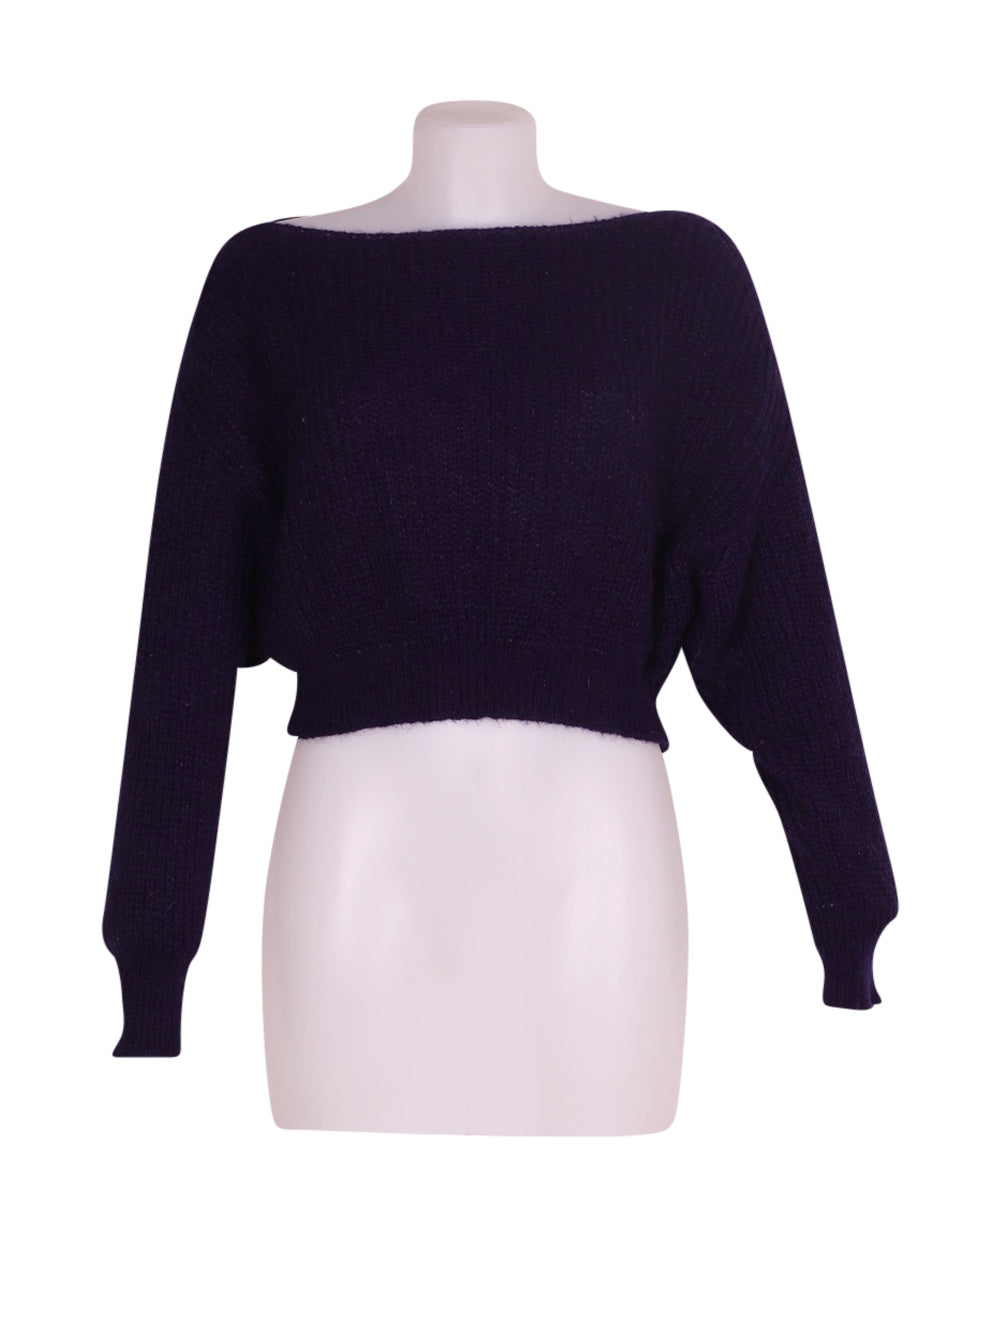 Front photo of Preloved Souvenir Violet Woman's sweater - size 10/M